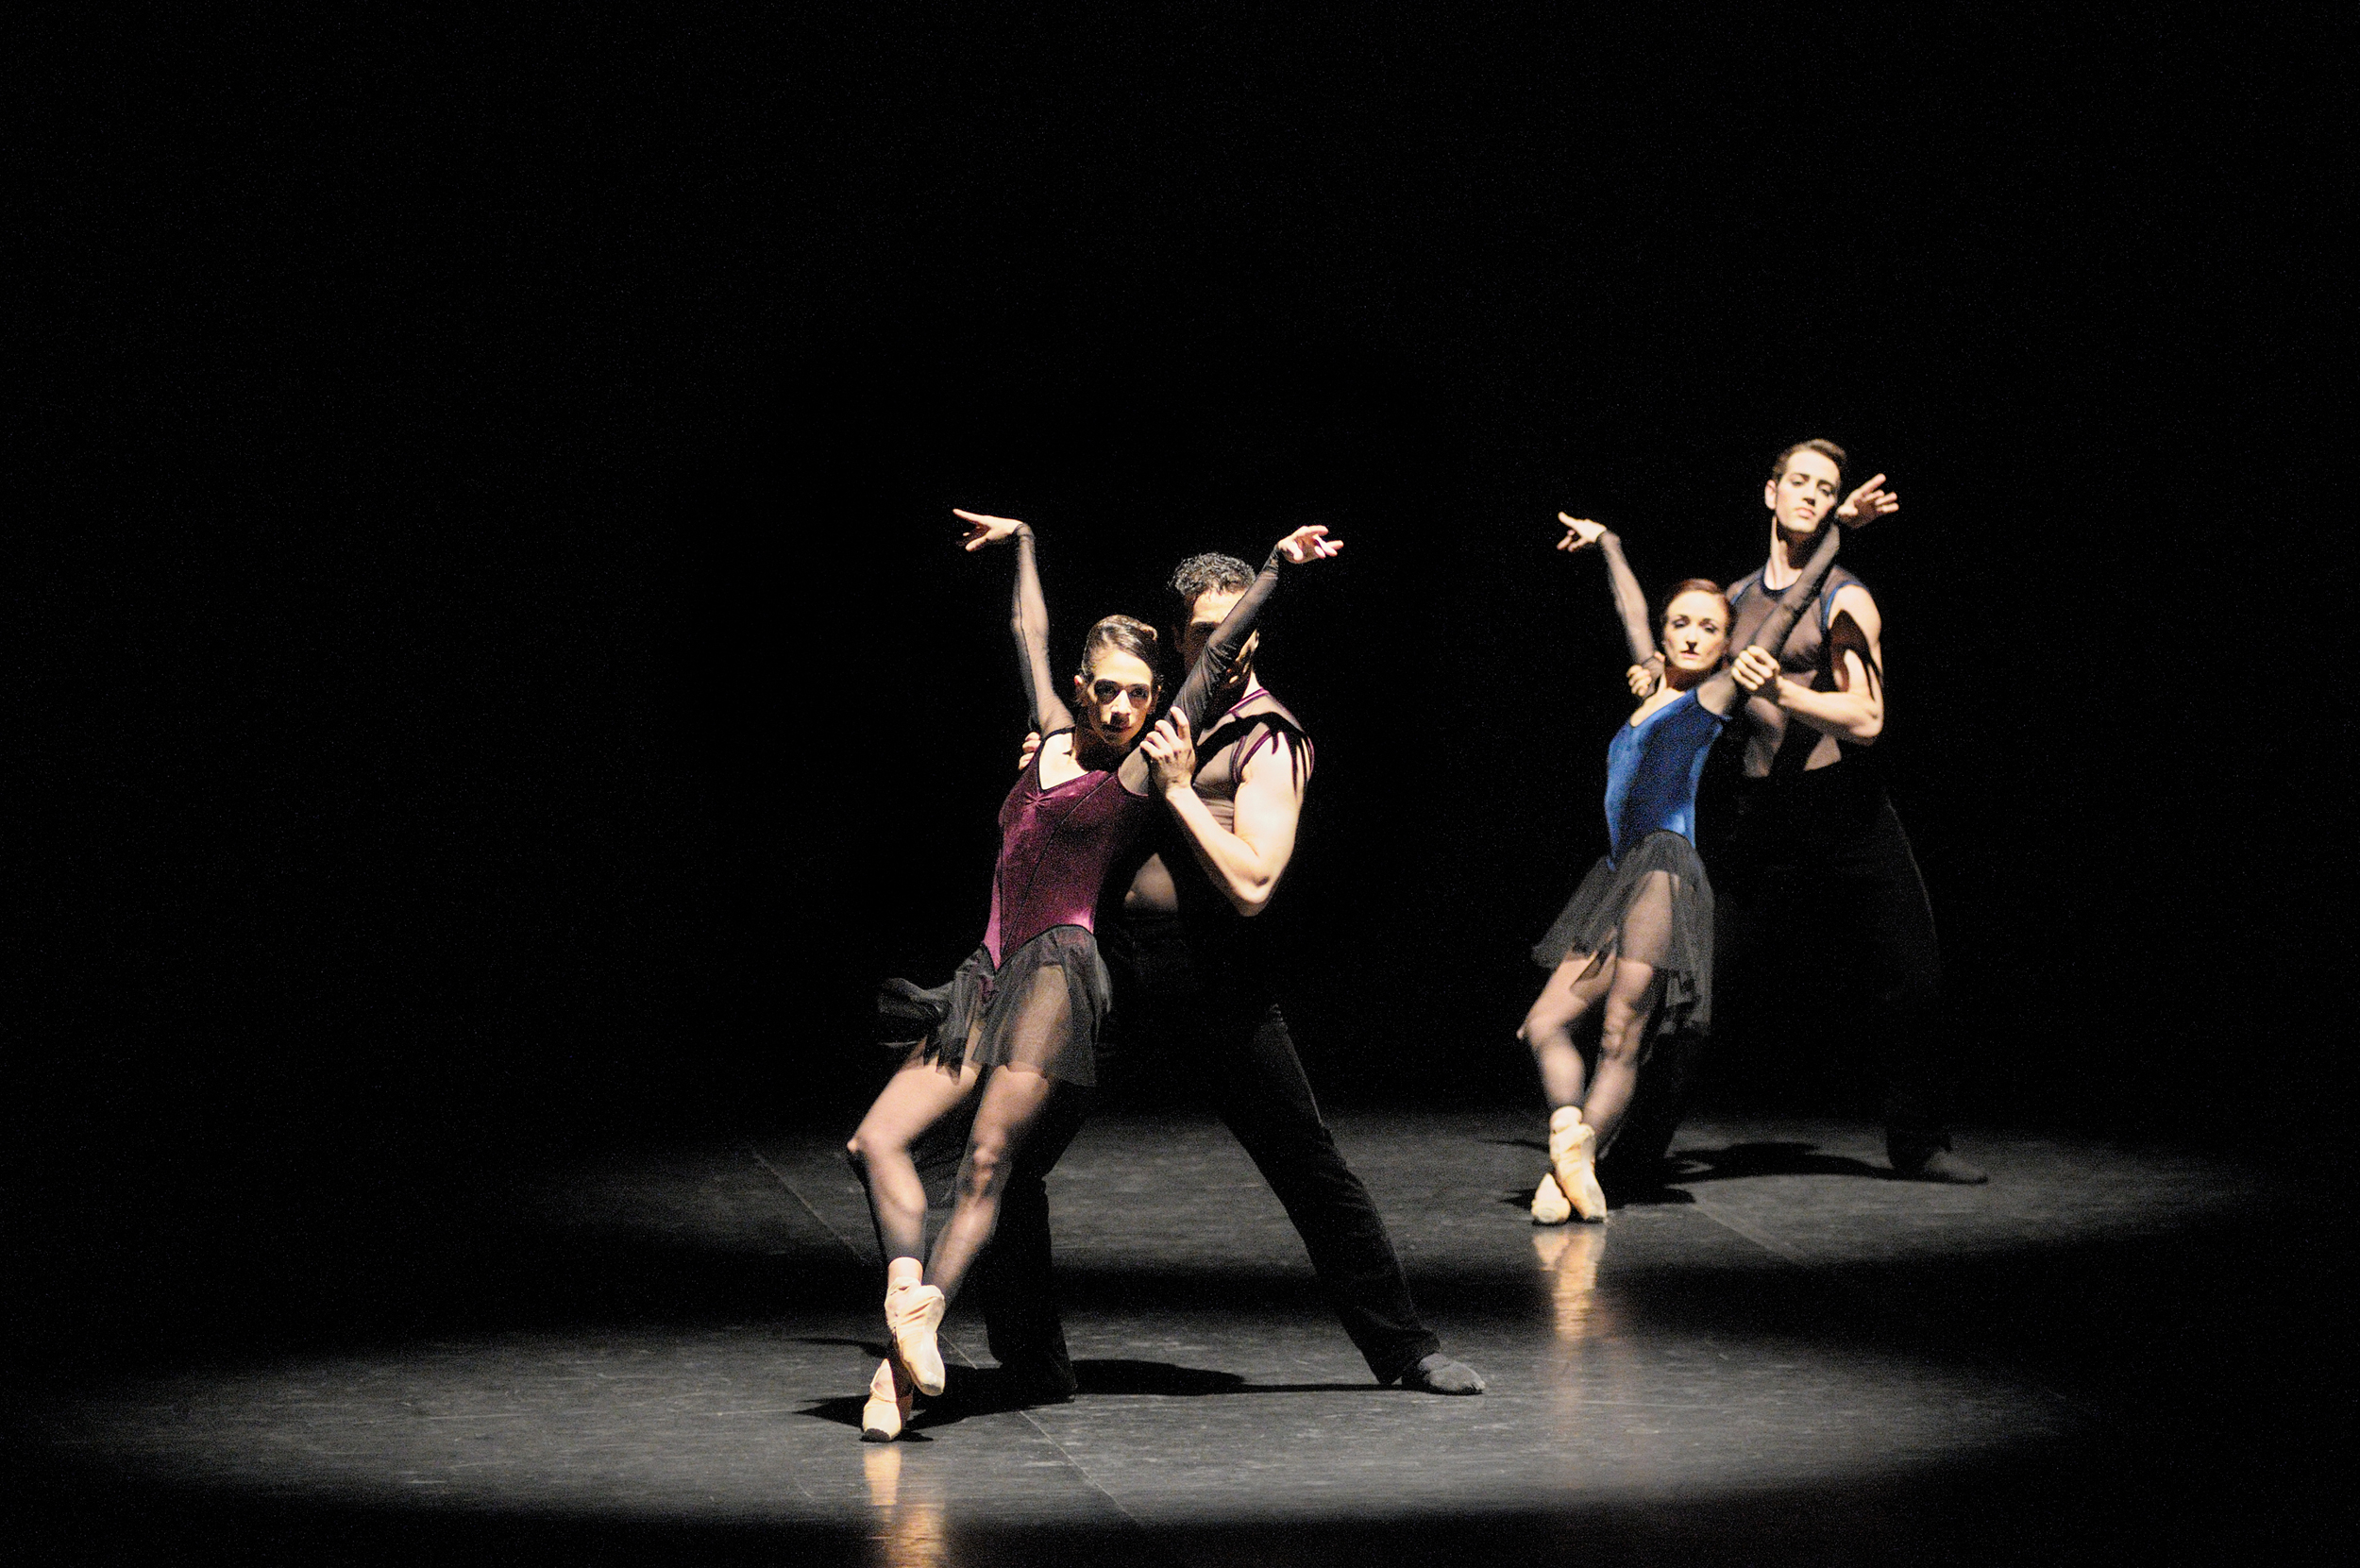 four dancers on stage in leotards